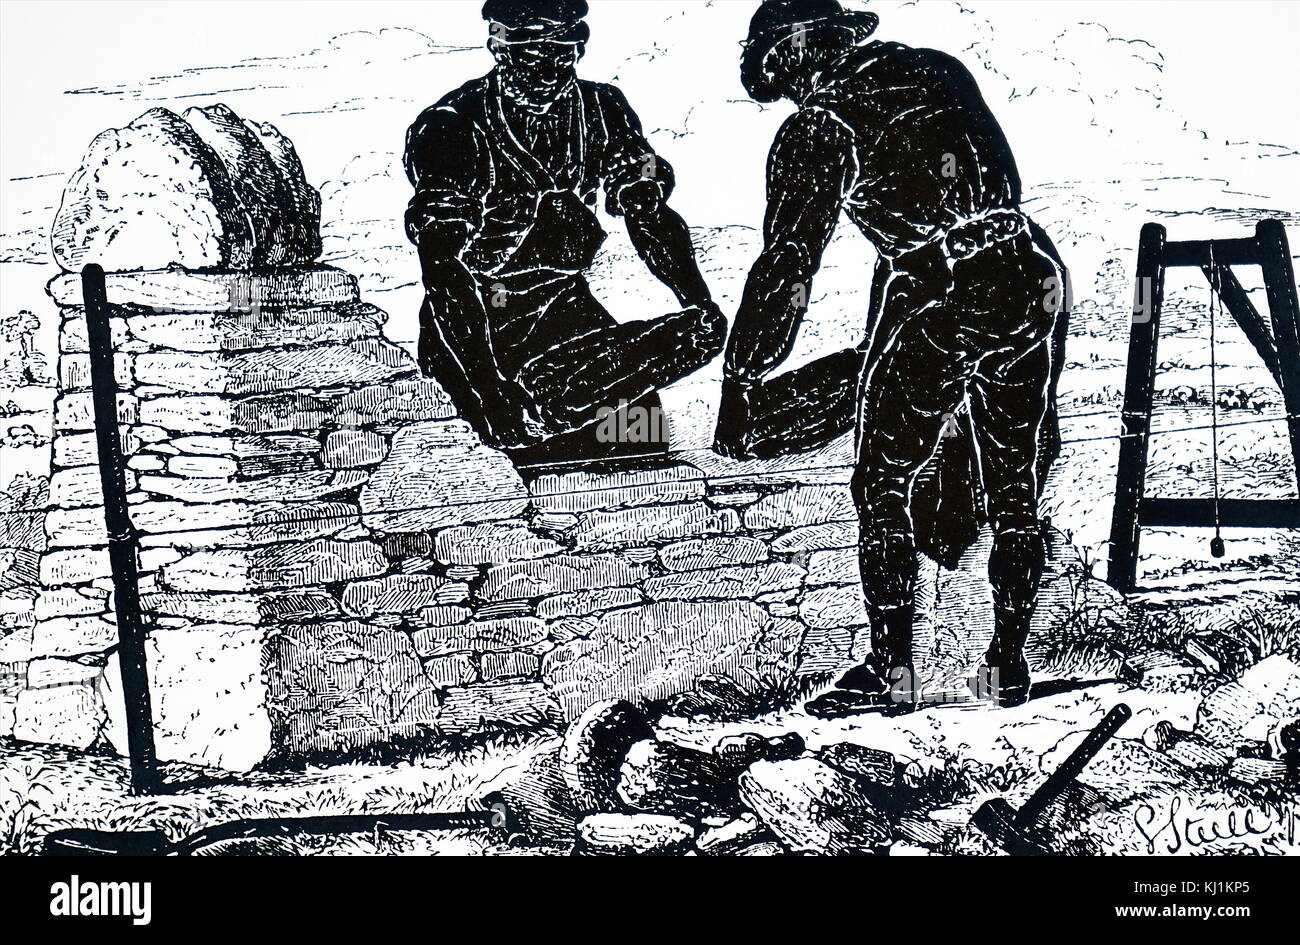 Engraving depicting the use of a plumb-bob to keep a dry stone wall vertical as it is built. Dated 19th Century Stock Photo